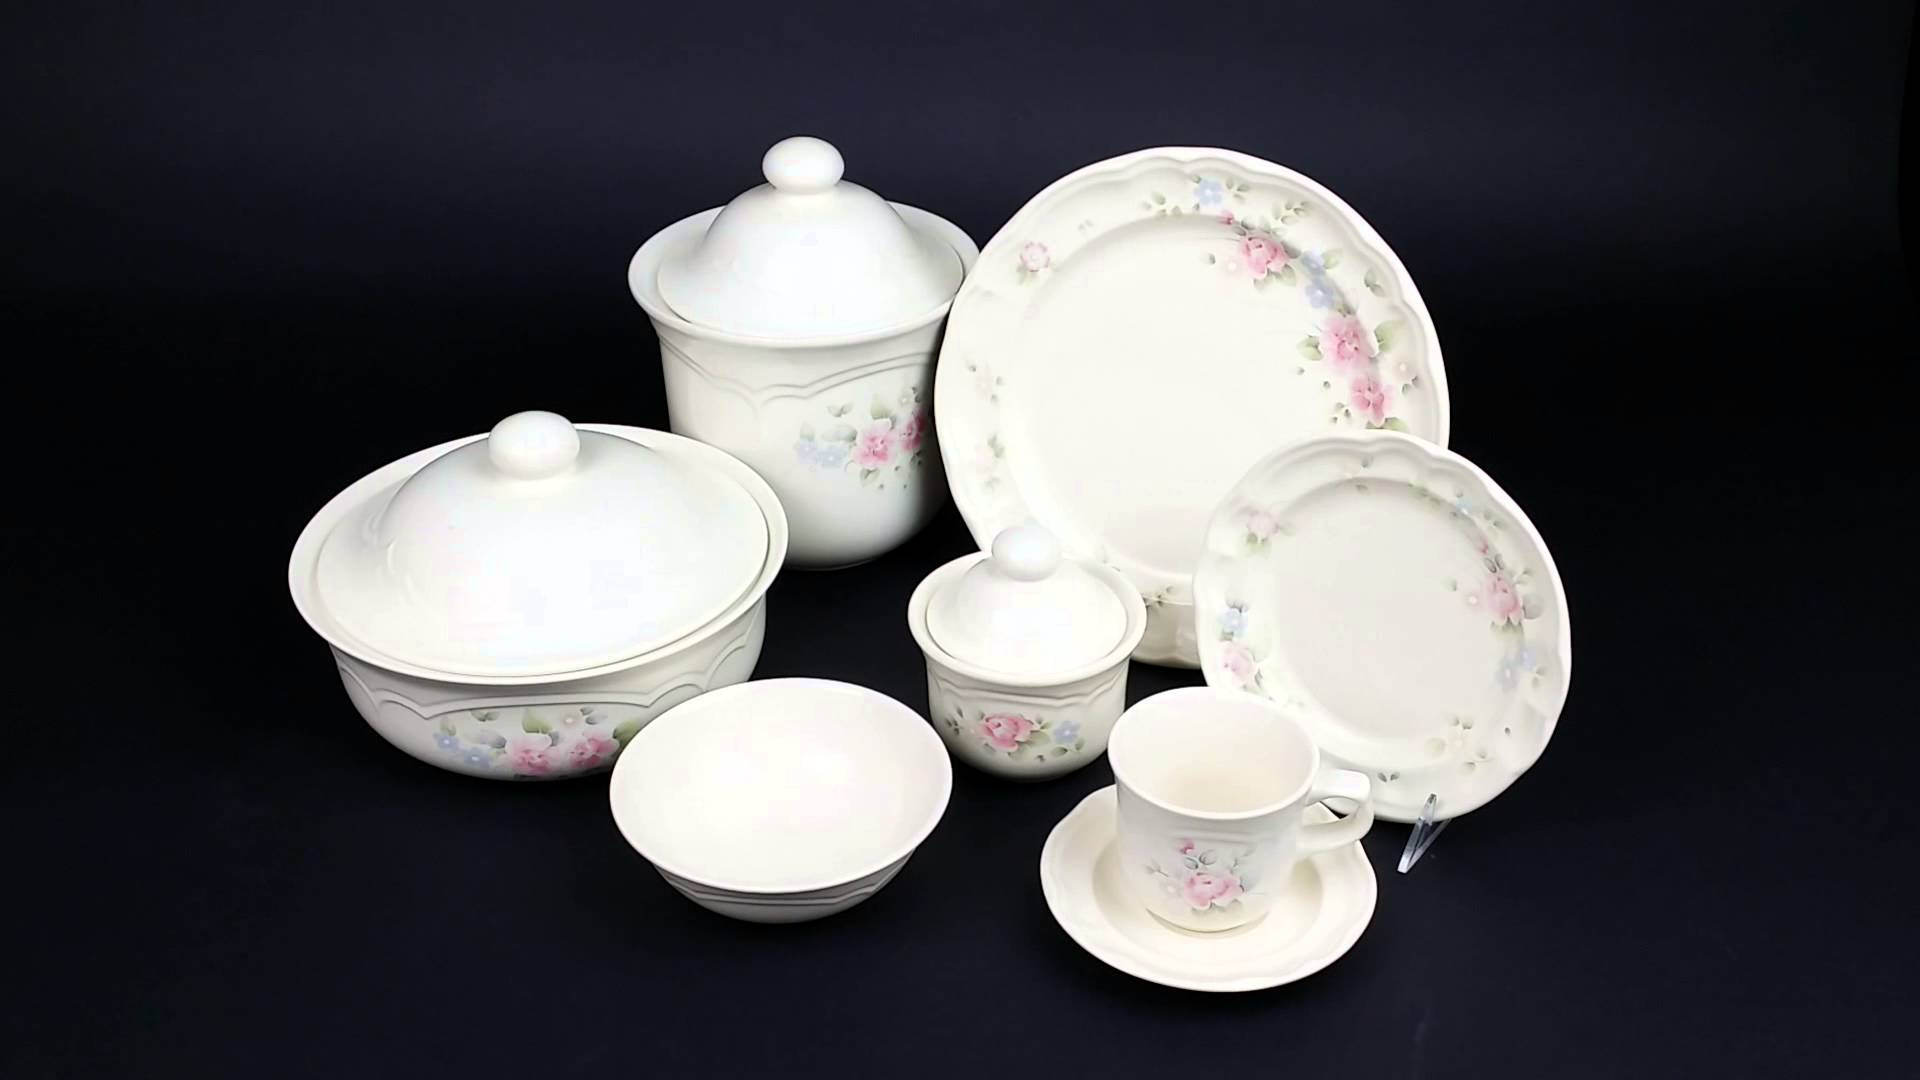 Pfaltzgraff China Tea Rose Pattern Pink Roses and Blue Flowers for lovely dinnerware ideas